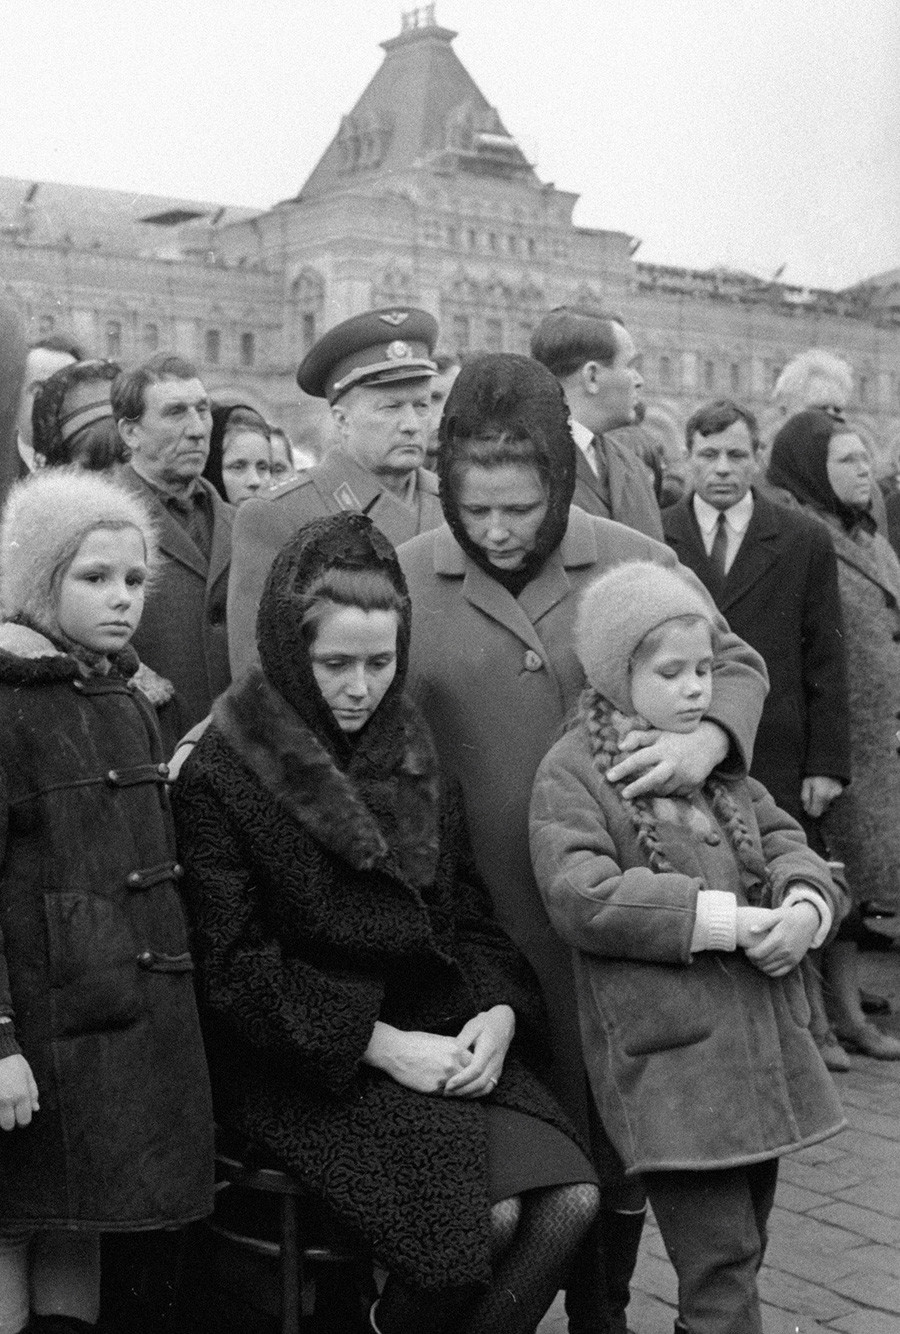 Valentina Gagarina (center) and her daughters attending the burial of Yuri Gagarin and Vladimir Seregin on Red Square on March 30, 1968. Yelena (l) is today the General Director of the State historical and cultural Museum-reserve Moscow Kremlin Museums.